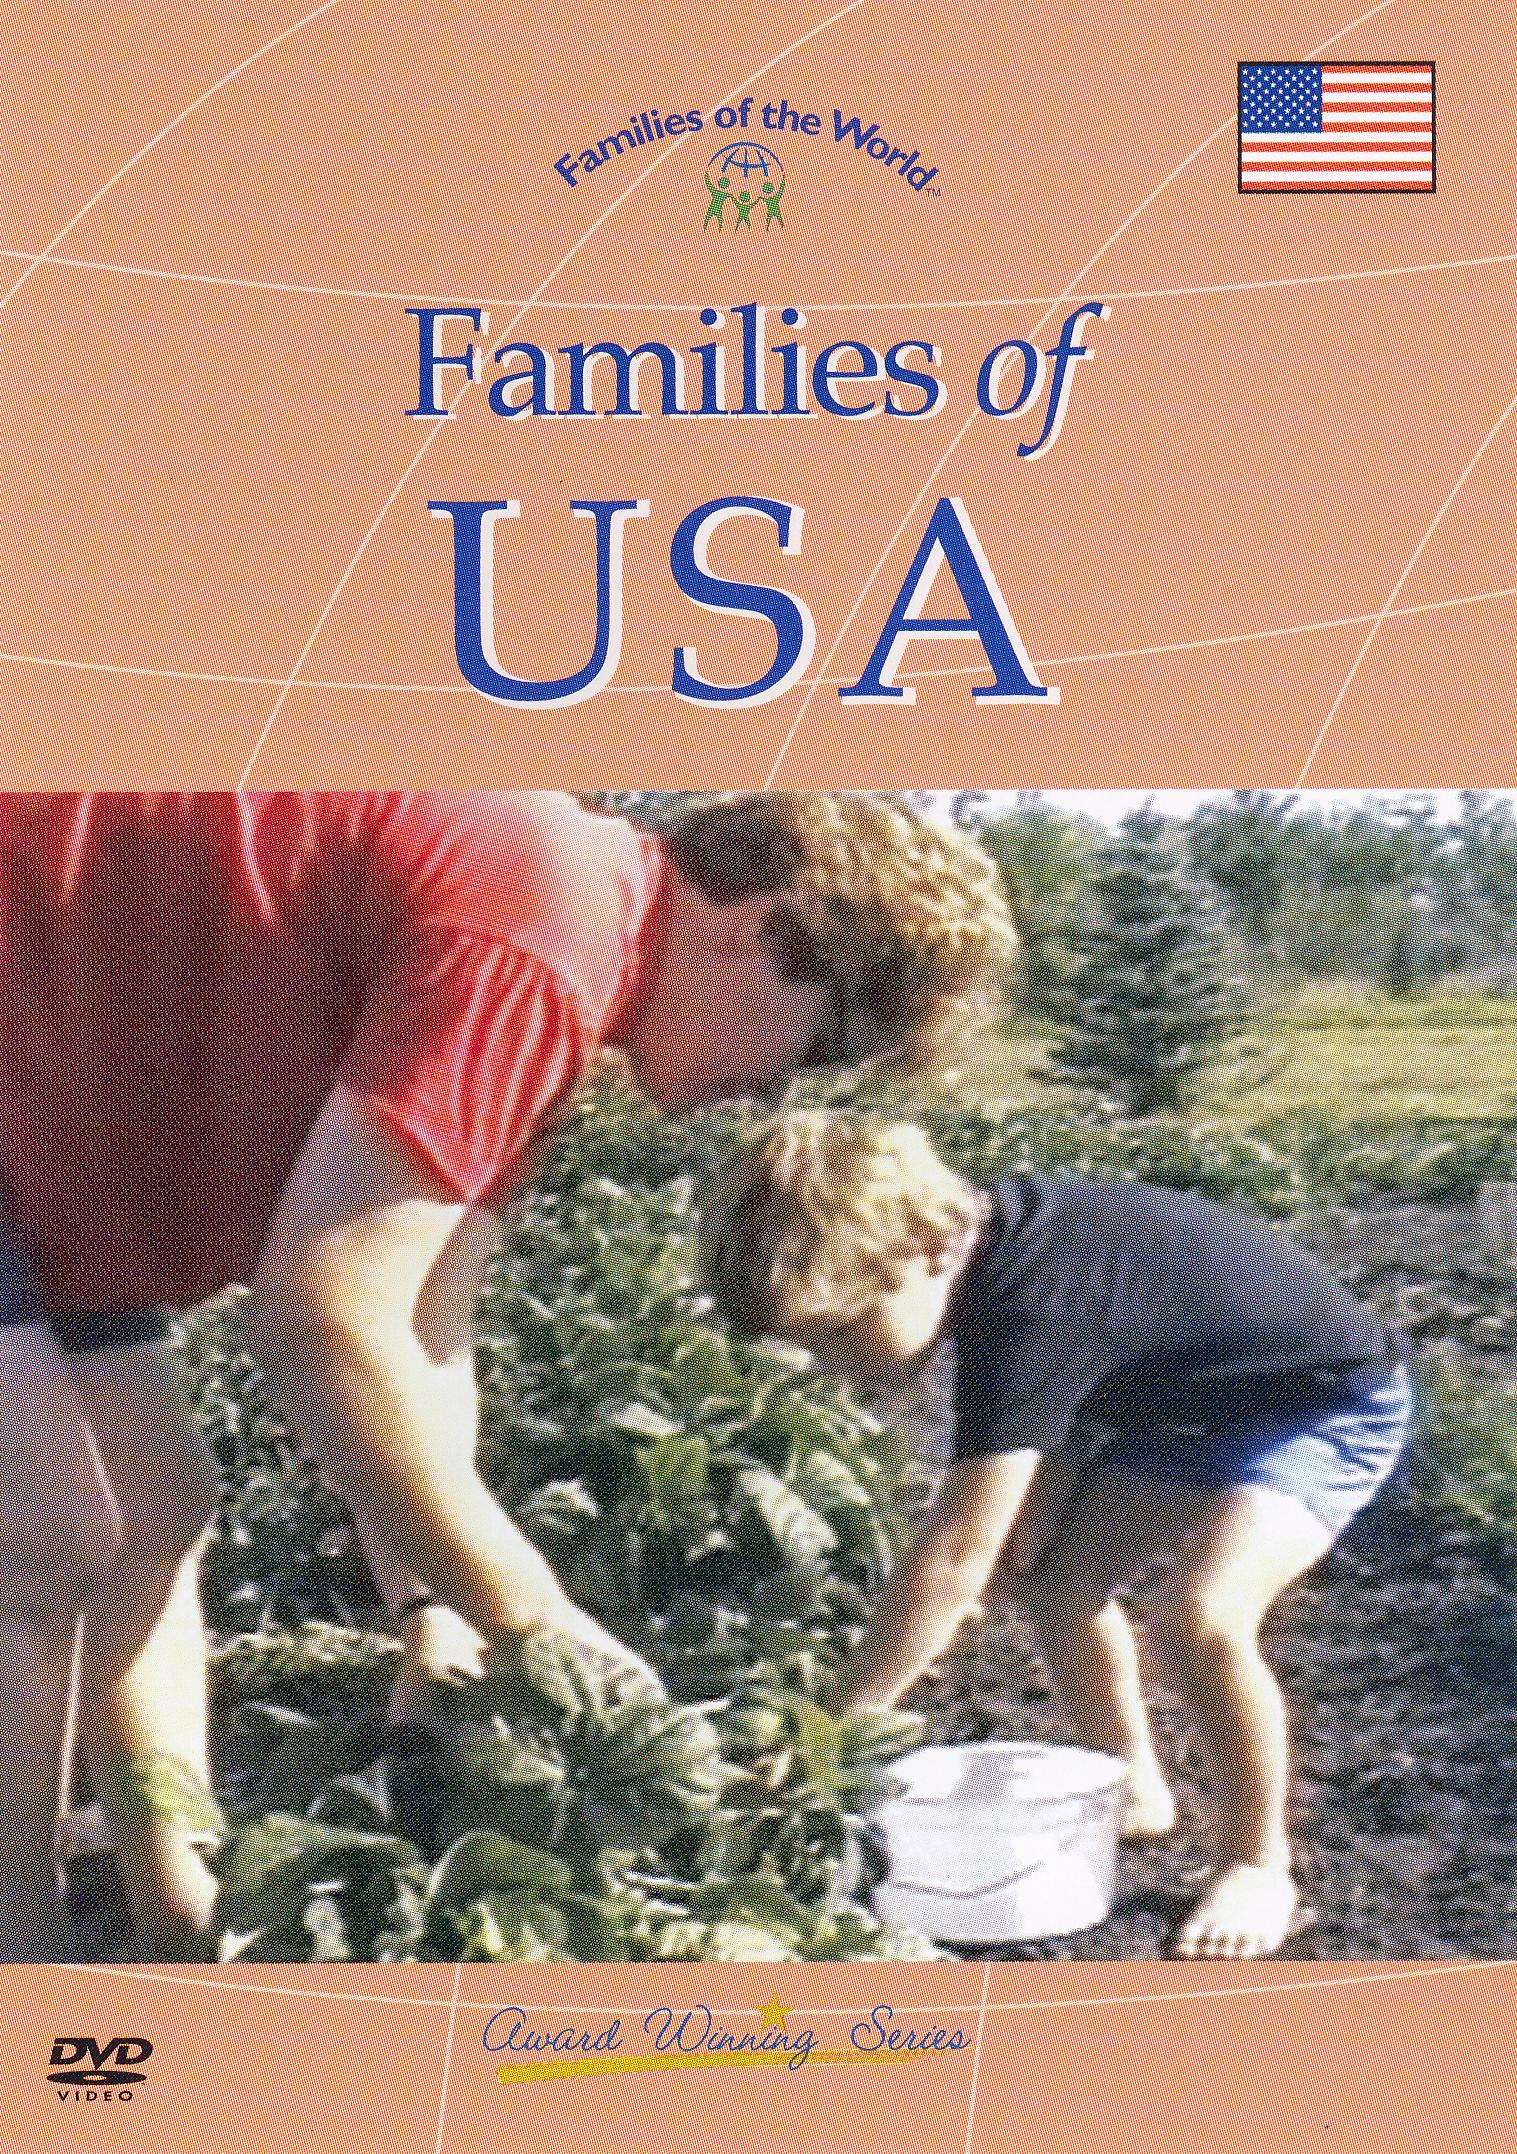 Families of the World: Families of USA